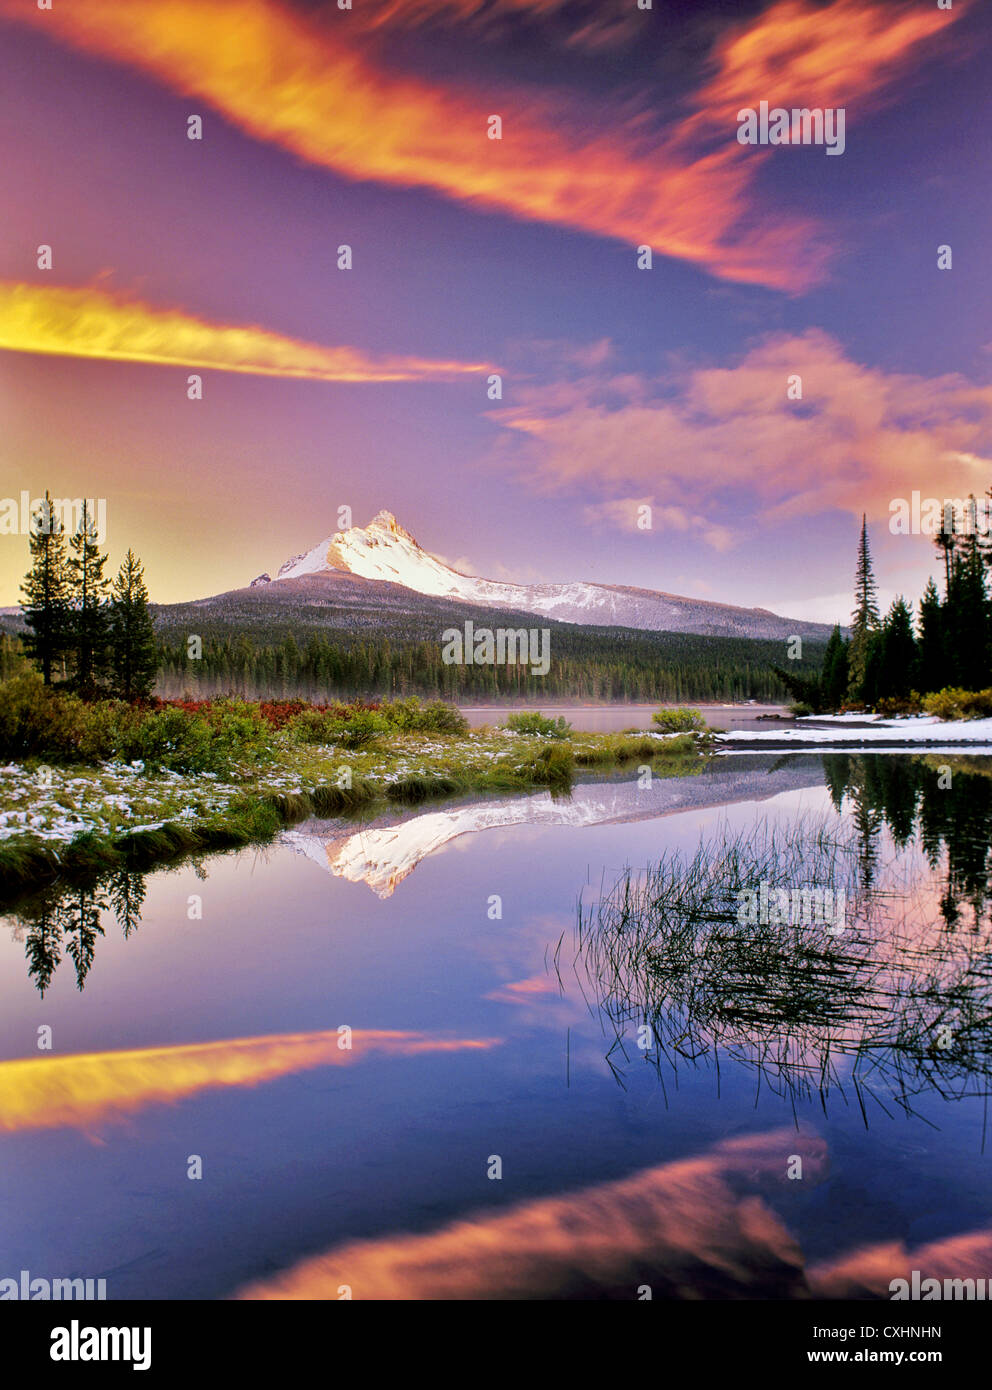 Mount Washington Reflexion in Big Lake mit Schnee und Sonnenuntergang. Oregon. Stockfoto